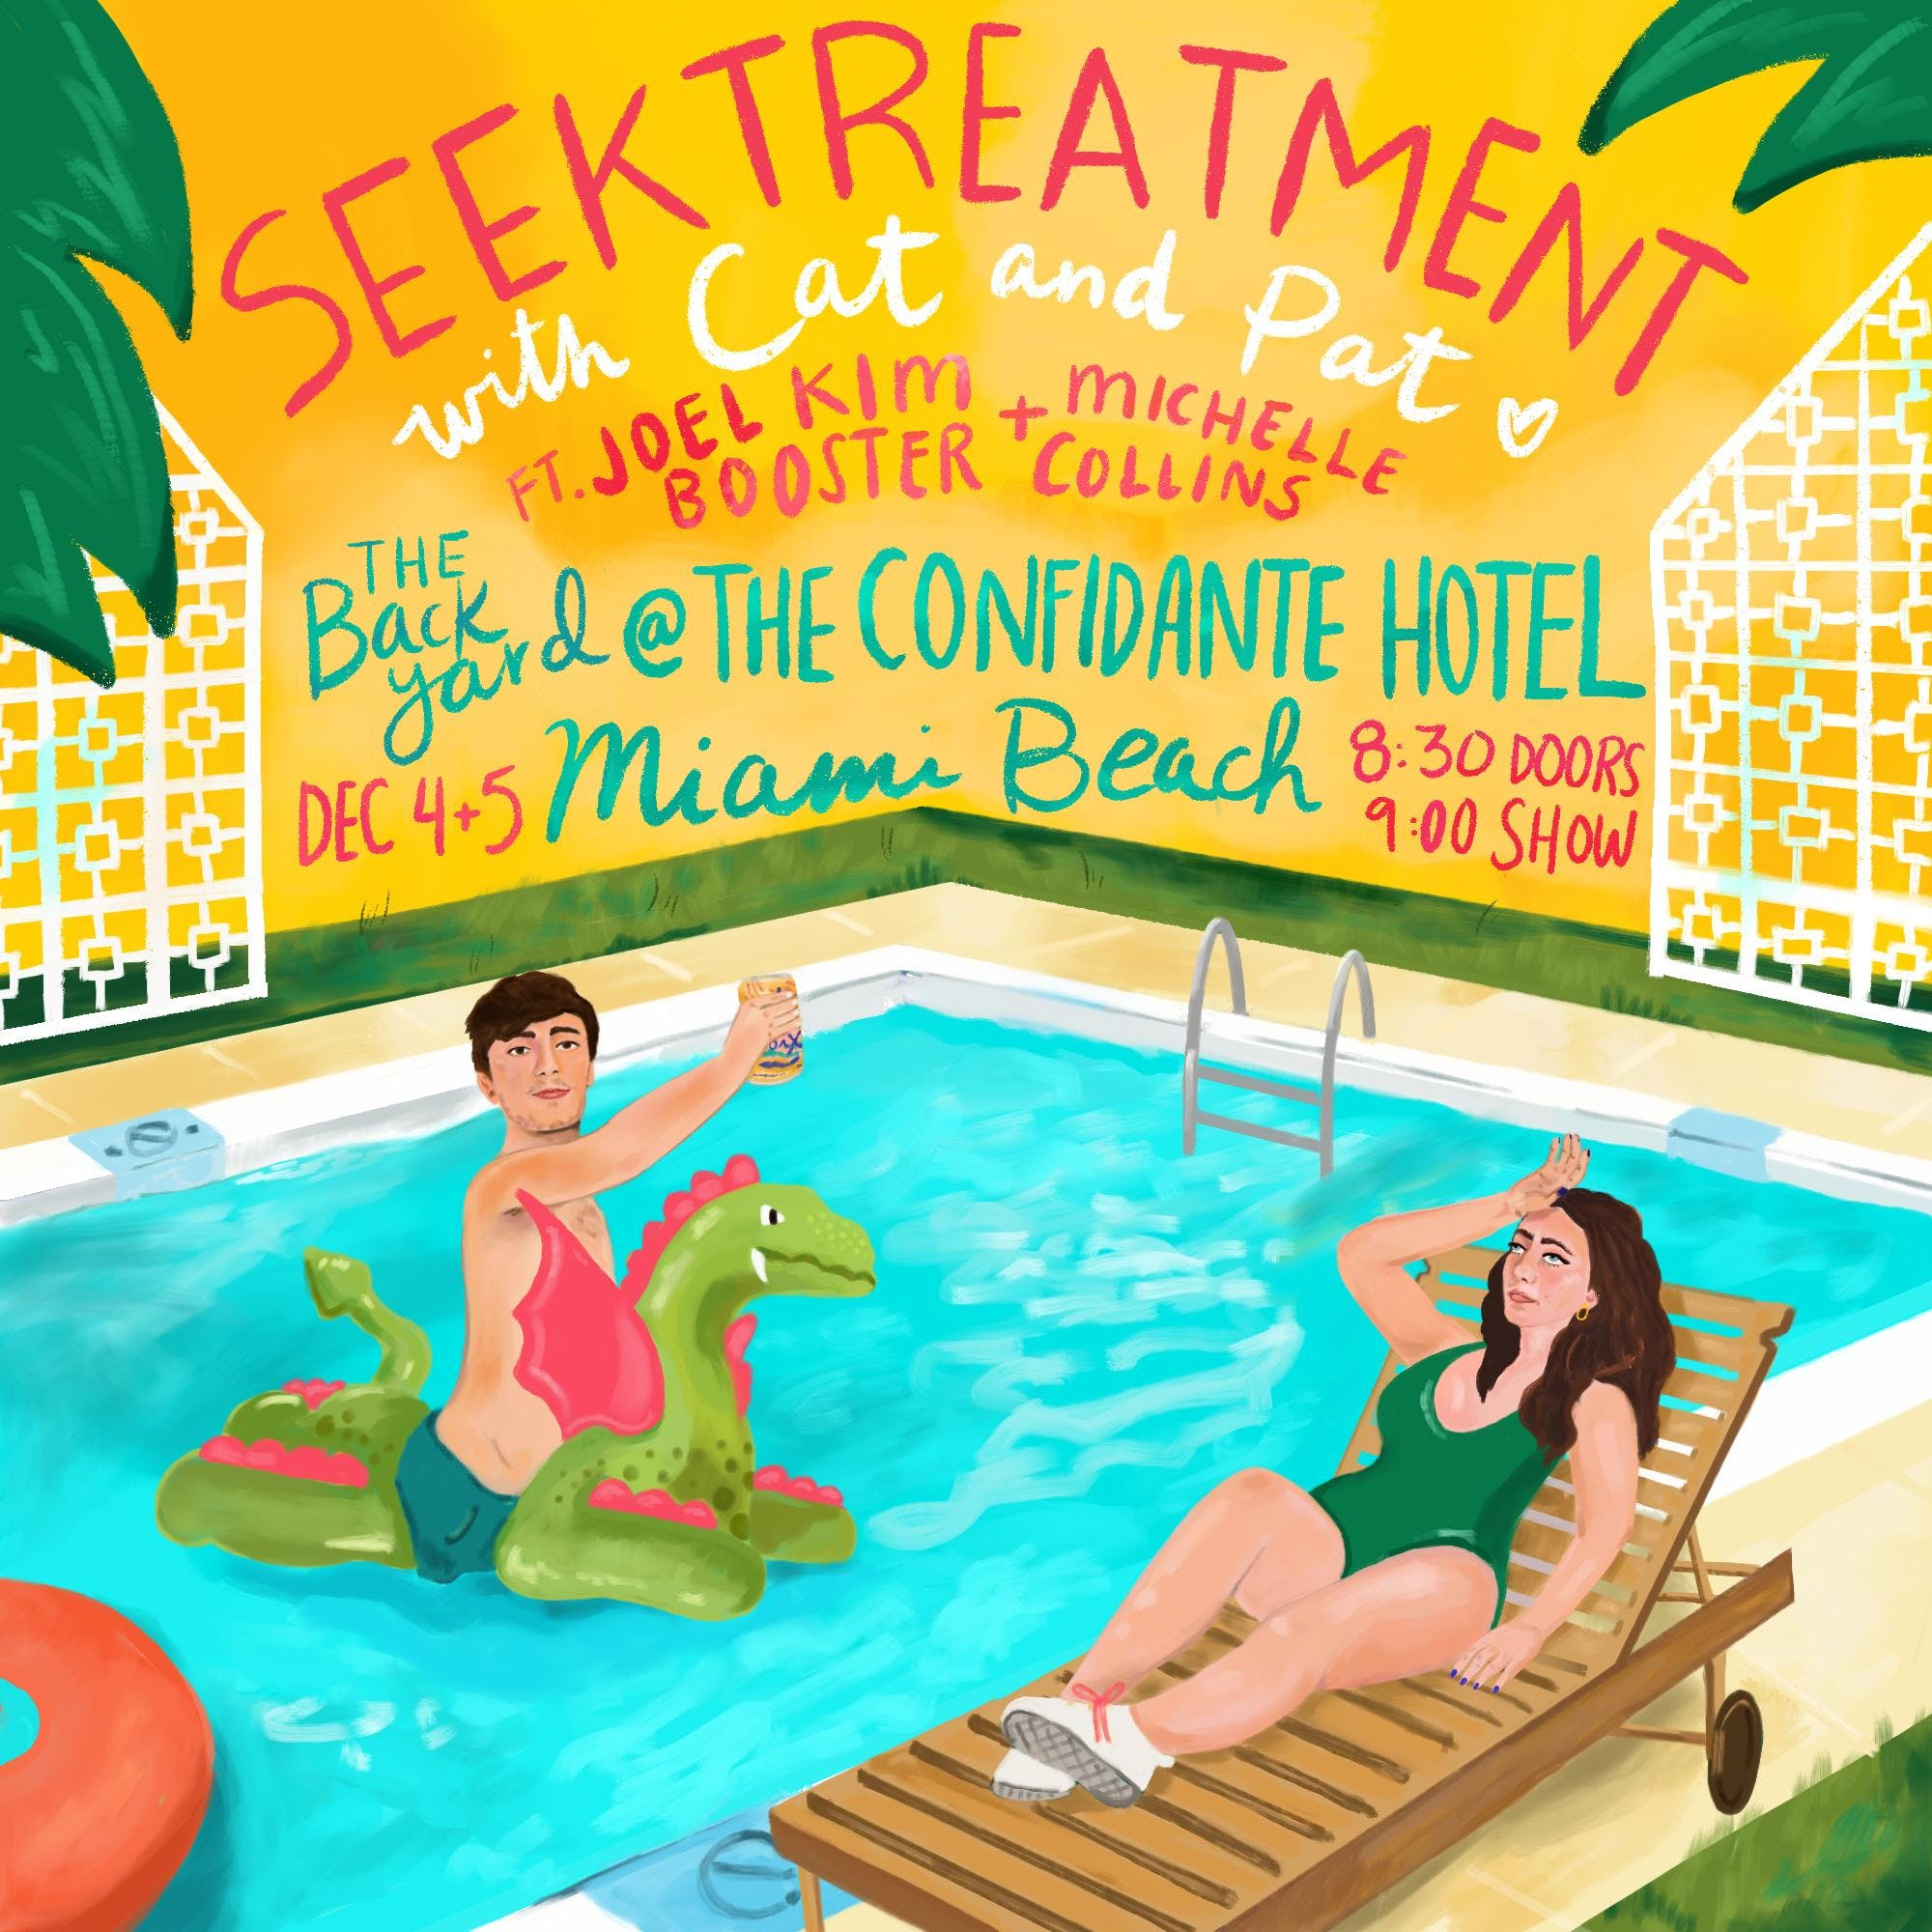 Seek Treatment live at the confidante hotel